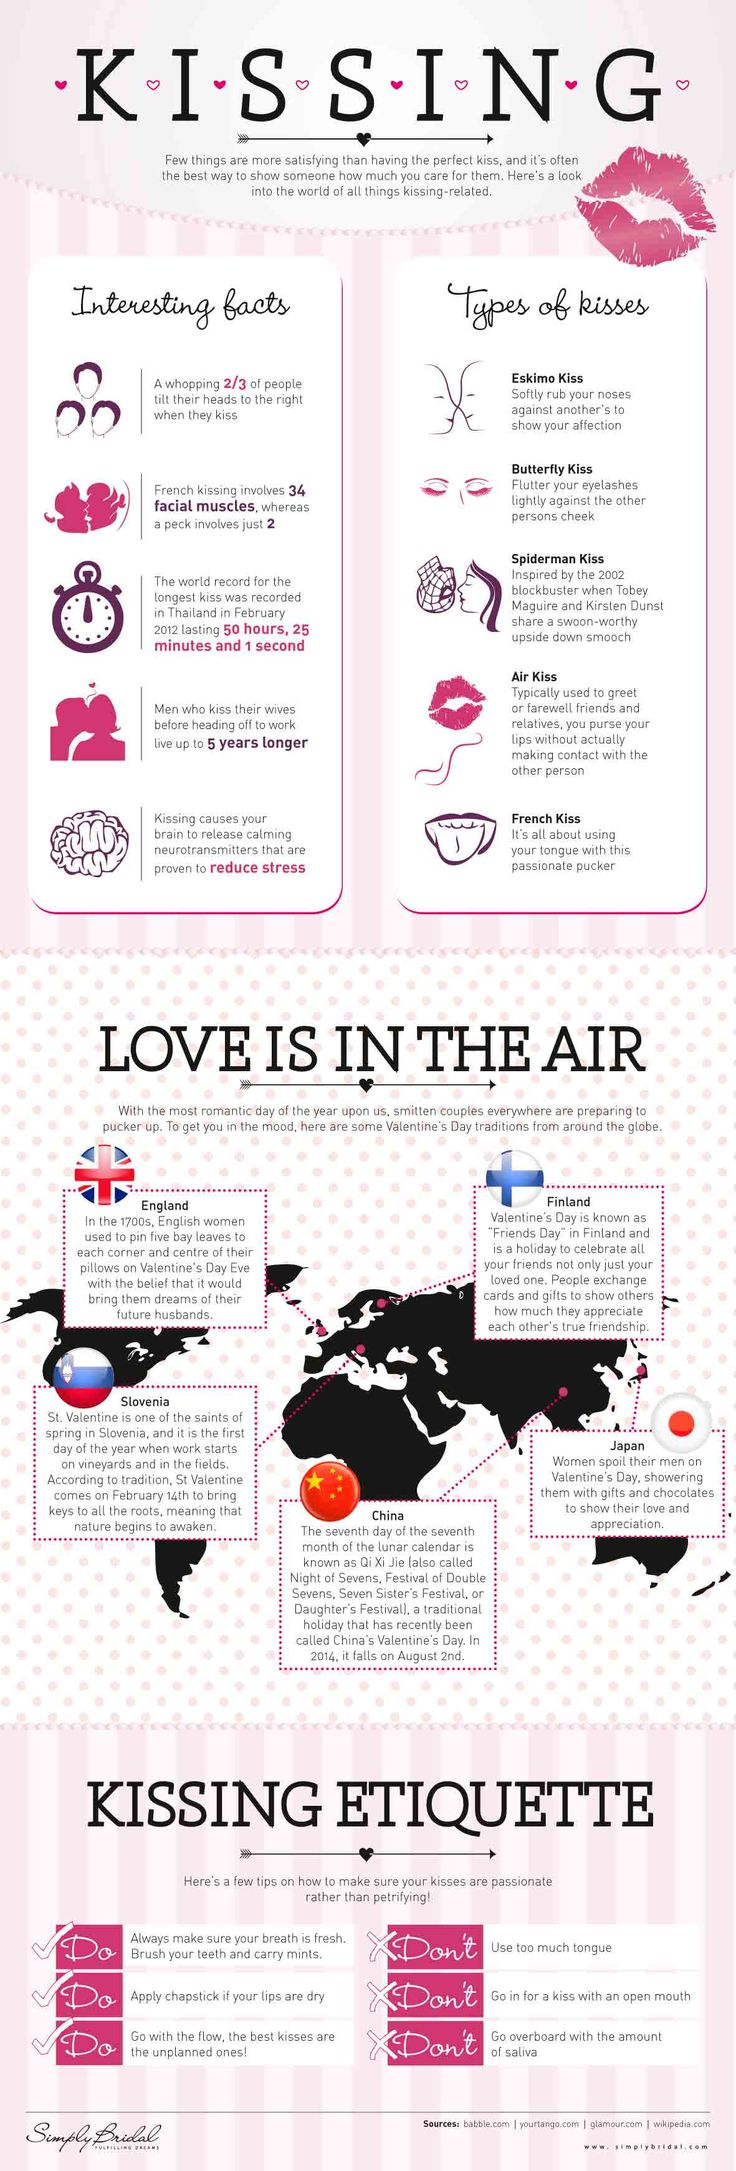 The Kissing Etiquette #Infographic #Kissing #valentine